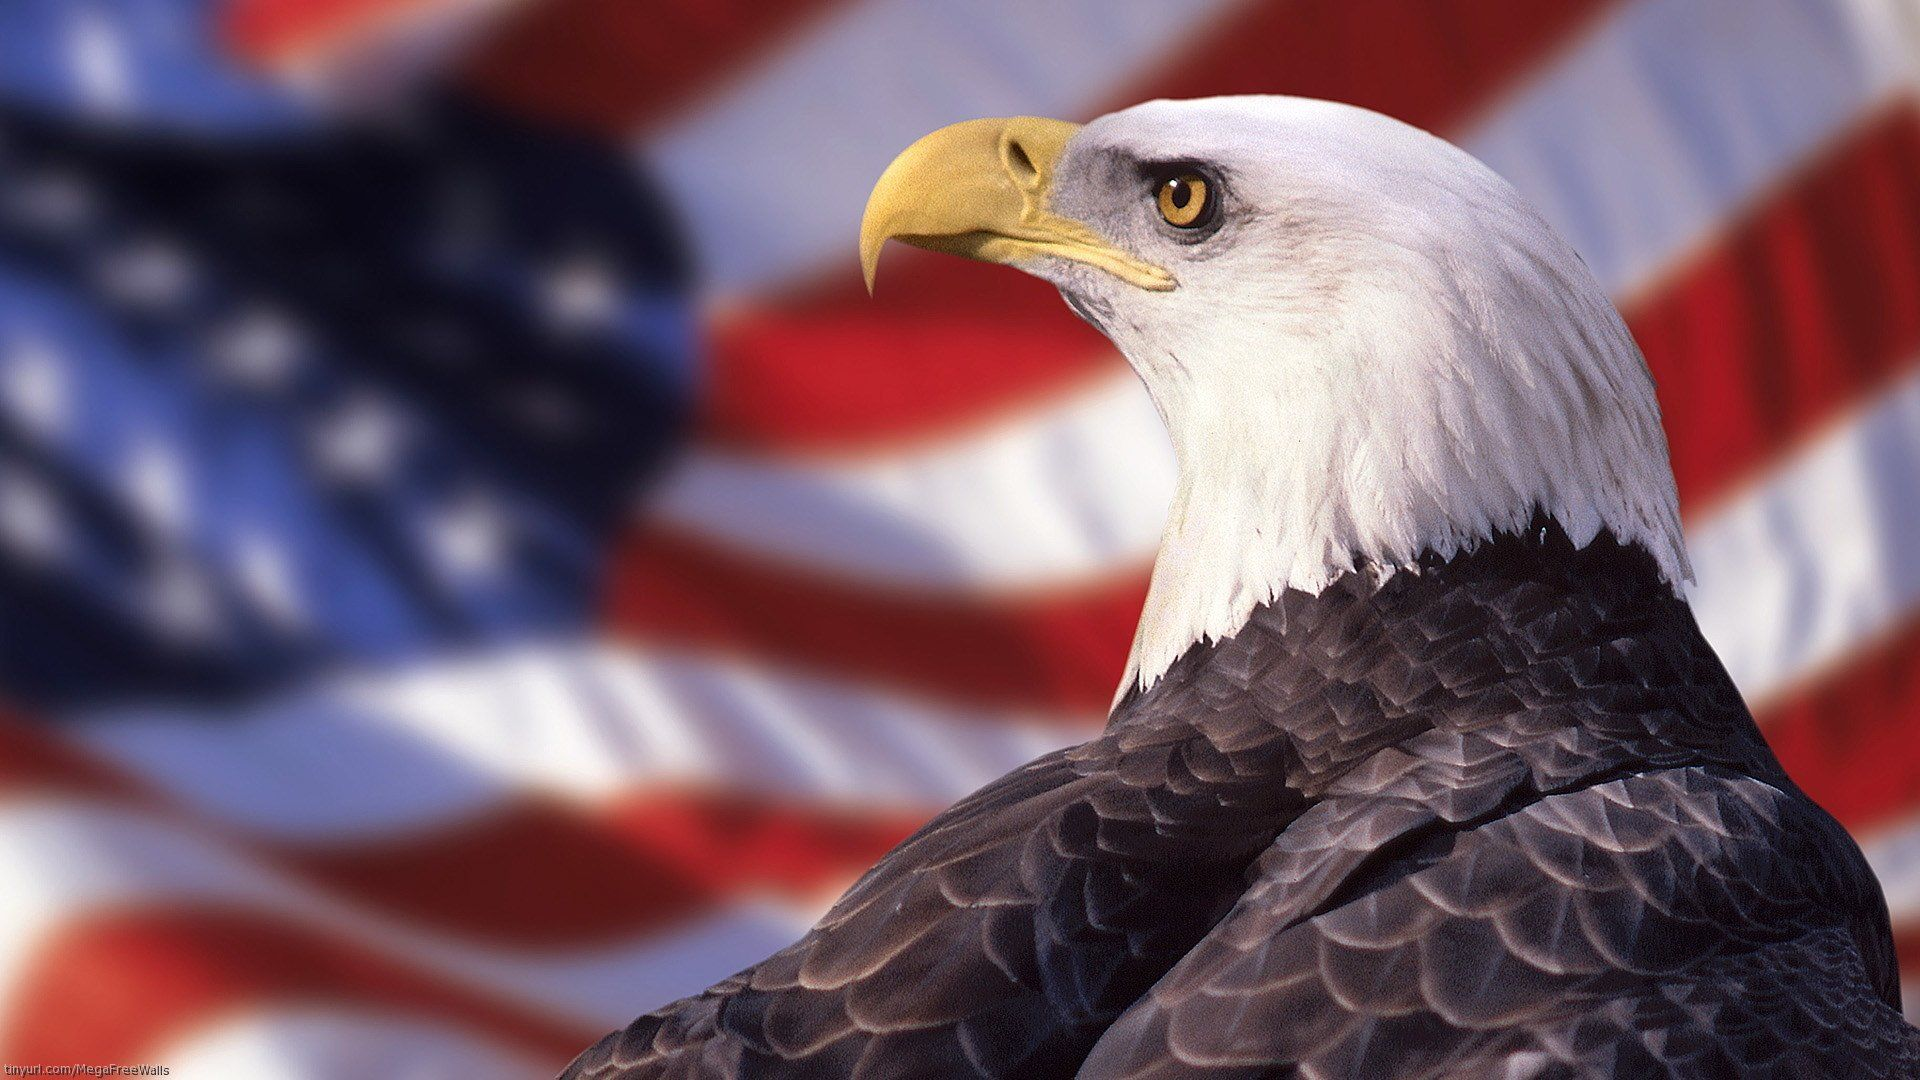 Bald Eagle Desktop Wallpapers - Top Free Bald Eagle Desktop Backgrounds -  WallpaperAccess